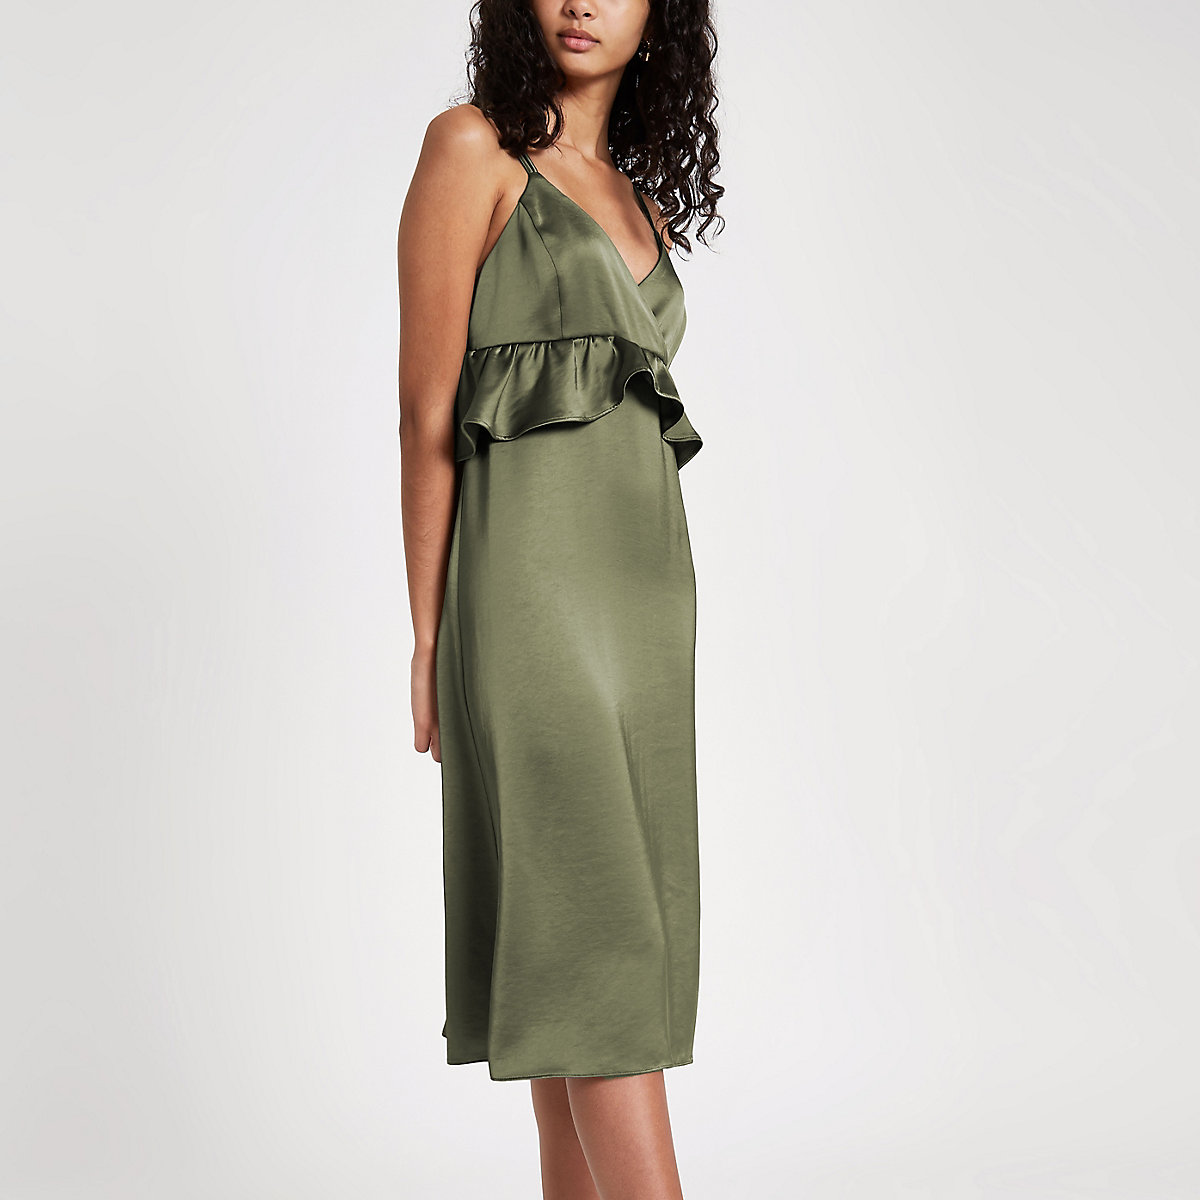 Khaki satin frill cami slip dress